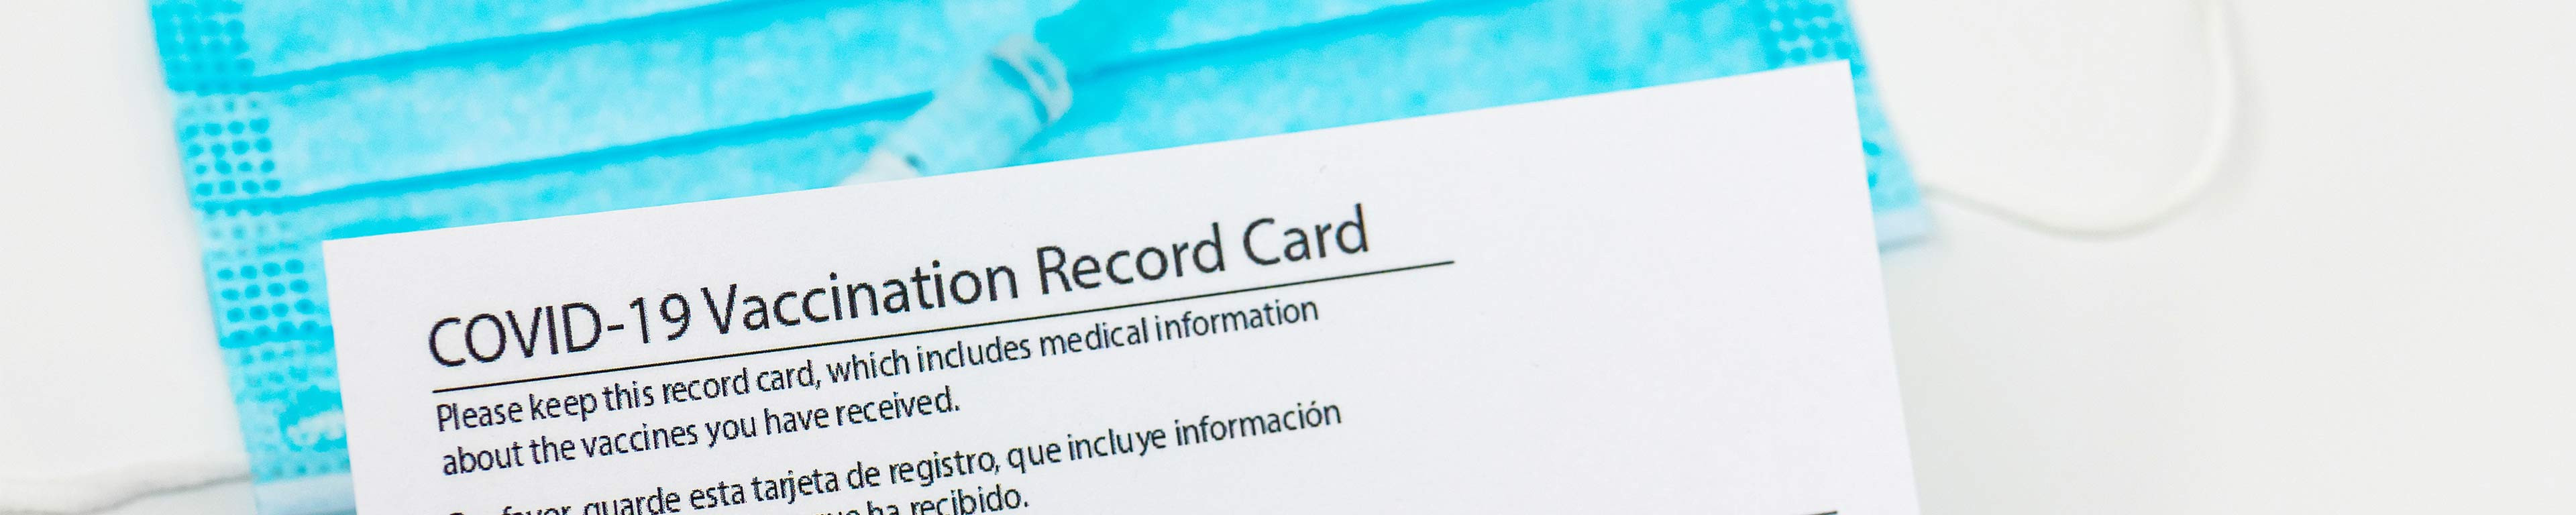 A vaccination record card resting on top of a mask near a syringe.